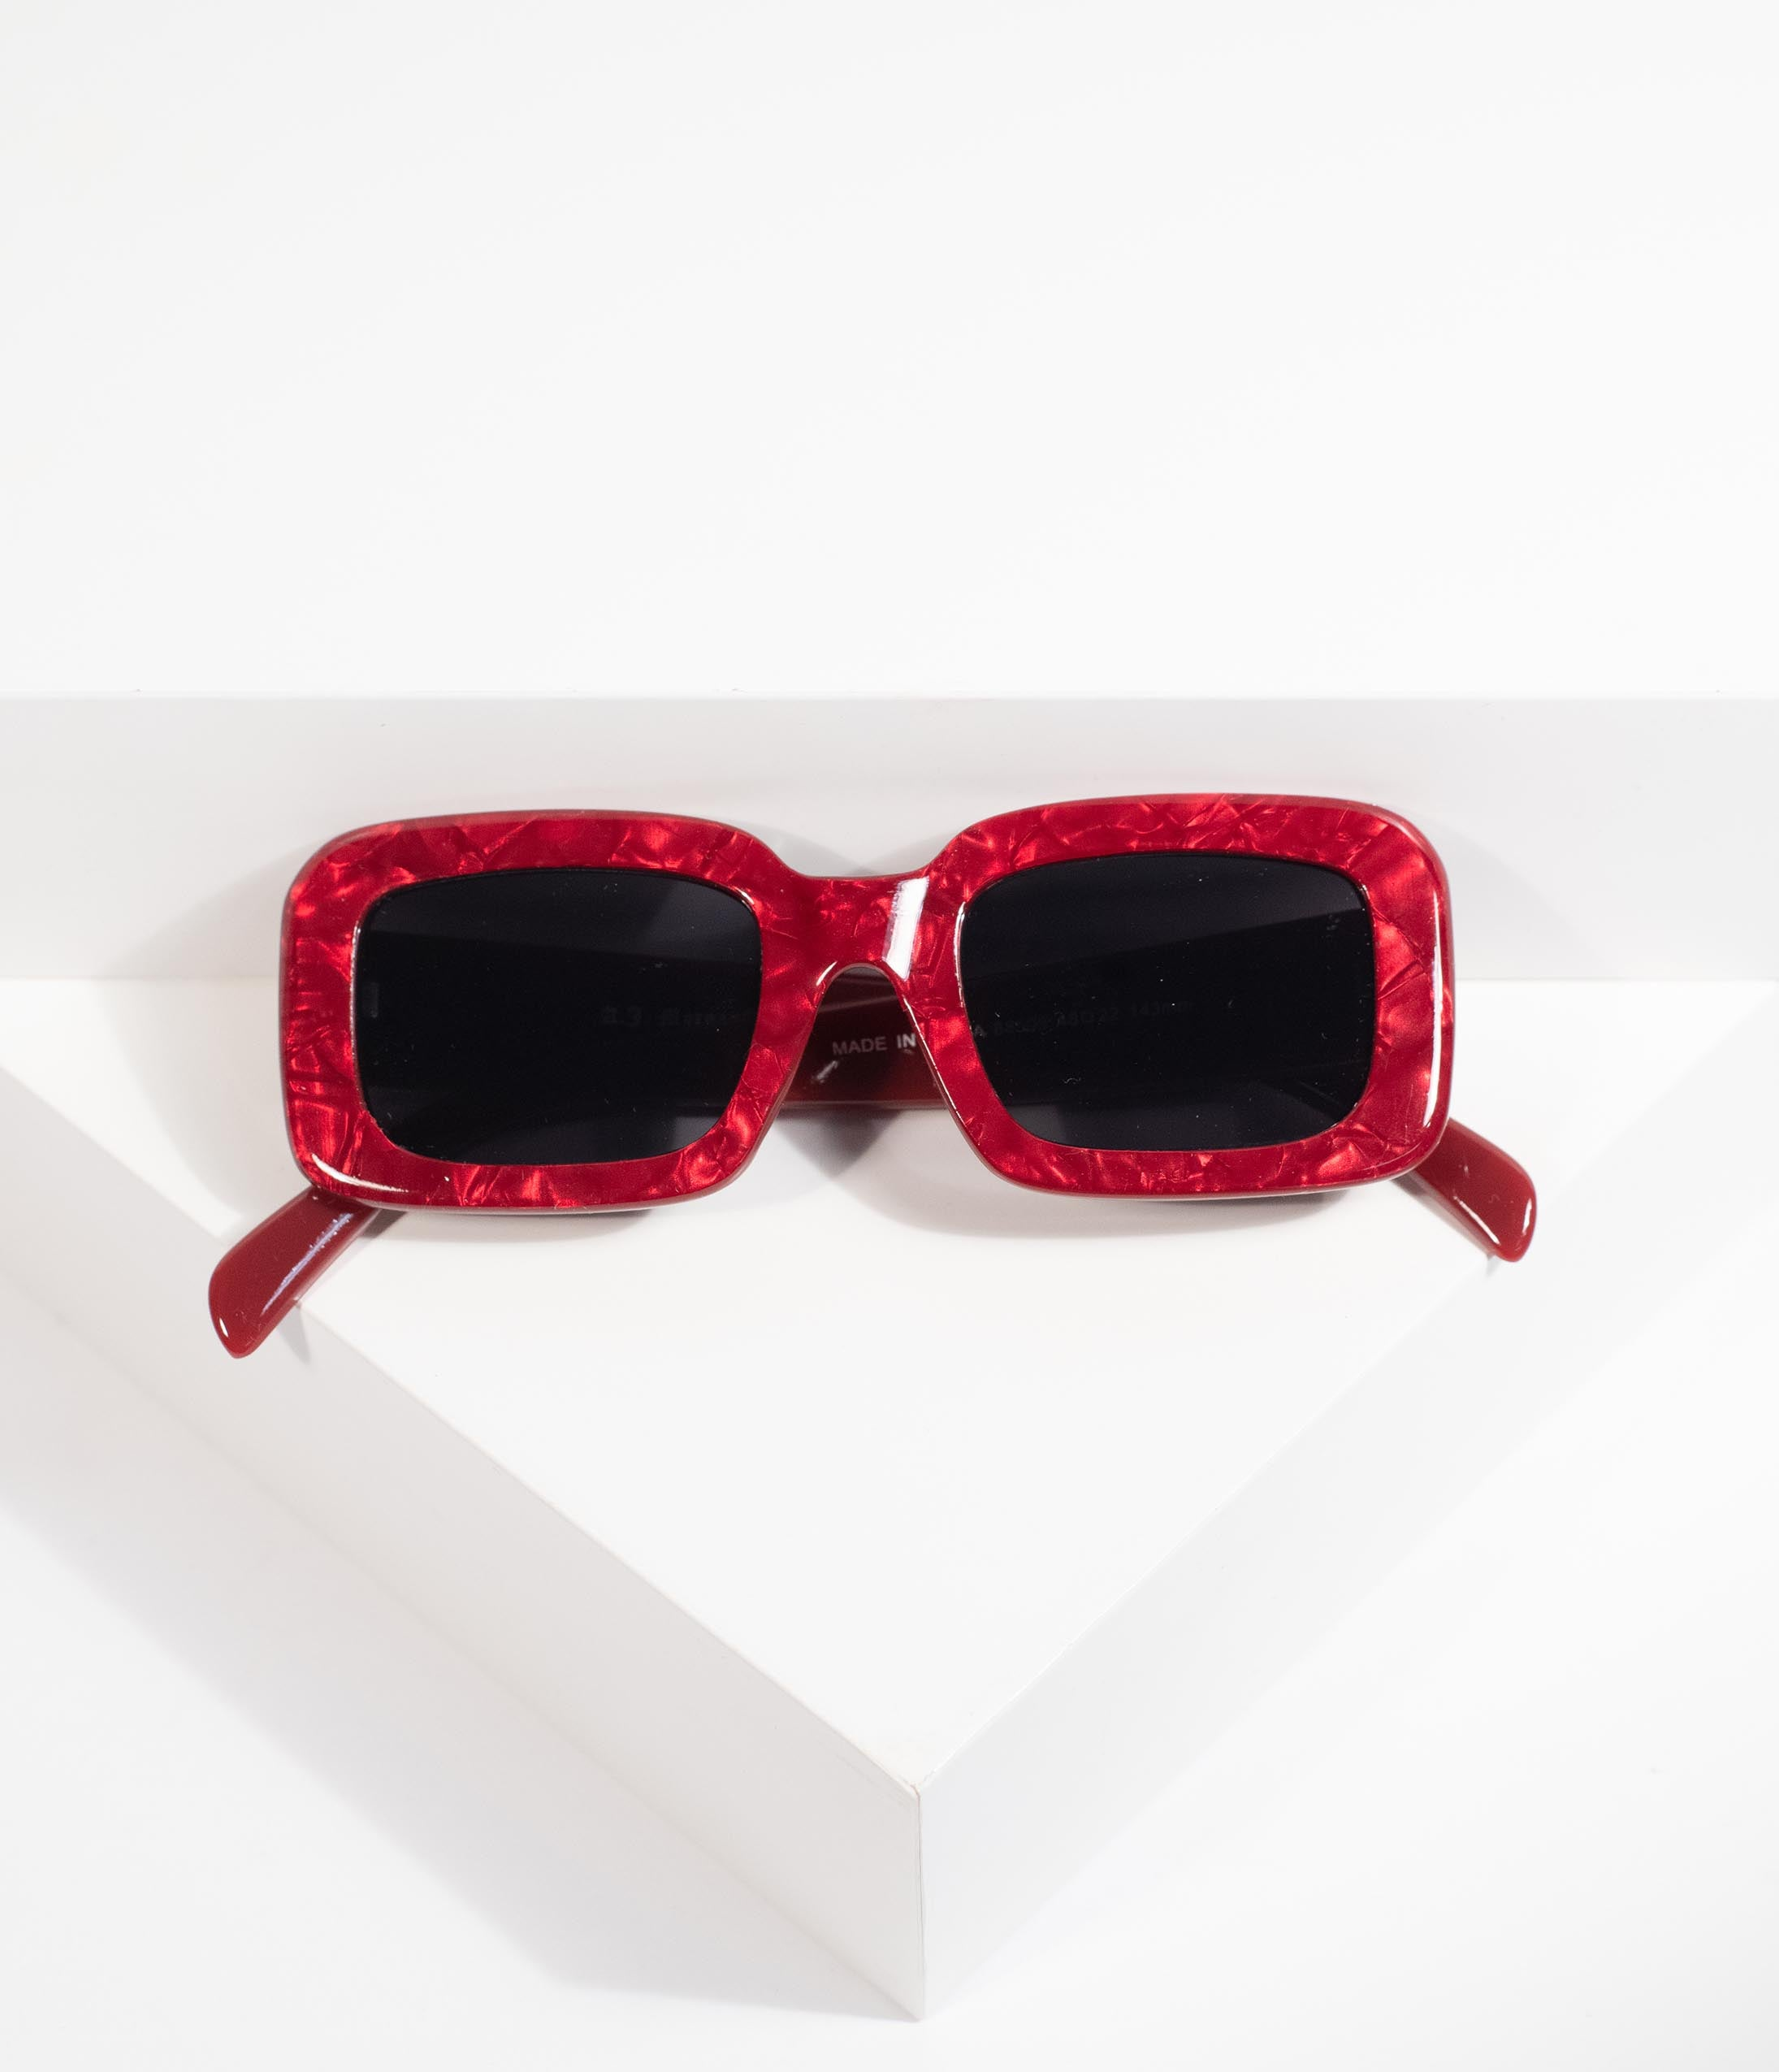 f841d50cb 1950s Sunglasses & 50s Glasses | Retro Cat Eye Sunglasses Retro Style Red  Marble Museum Square